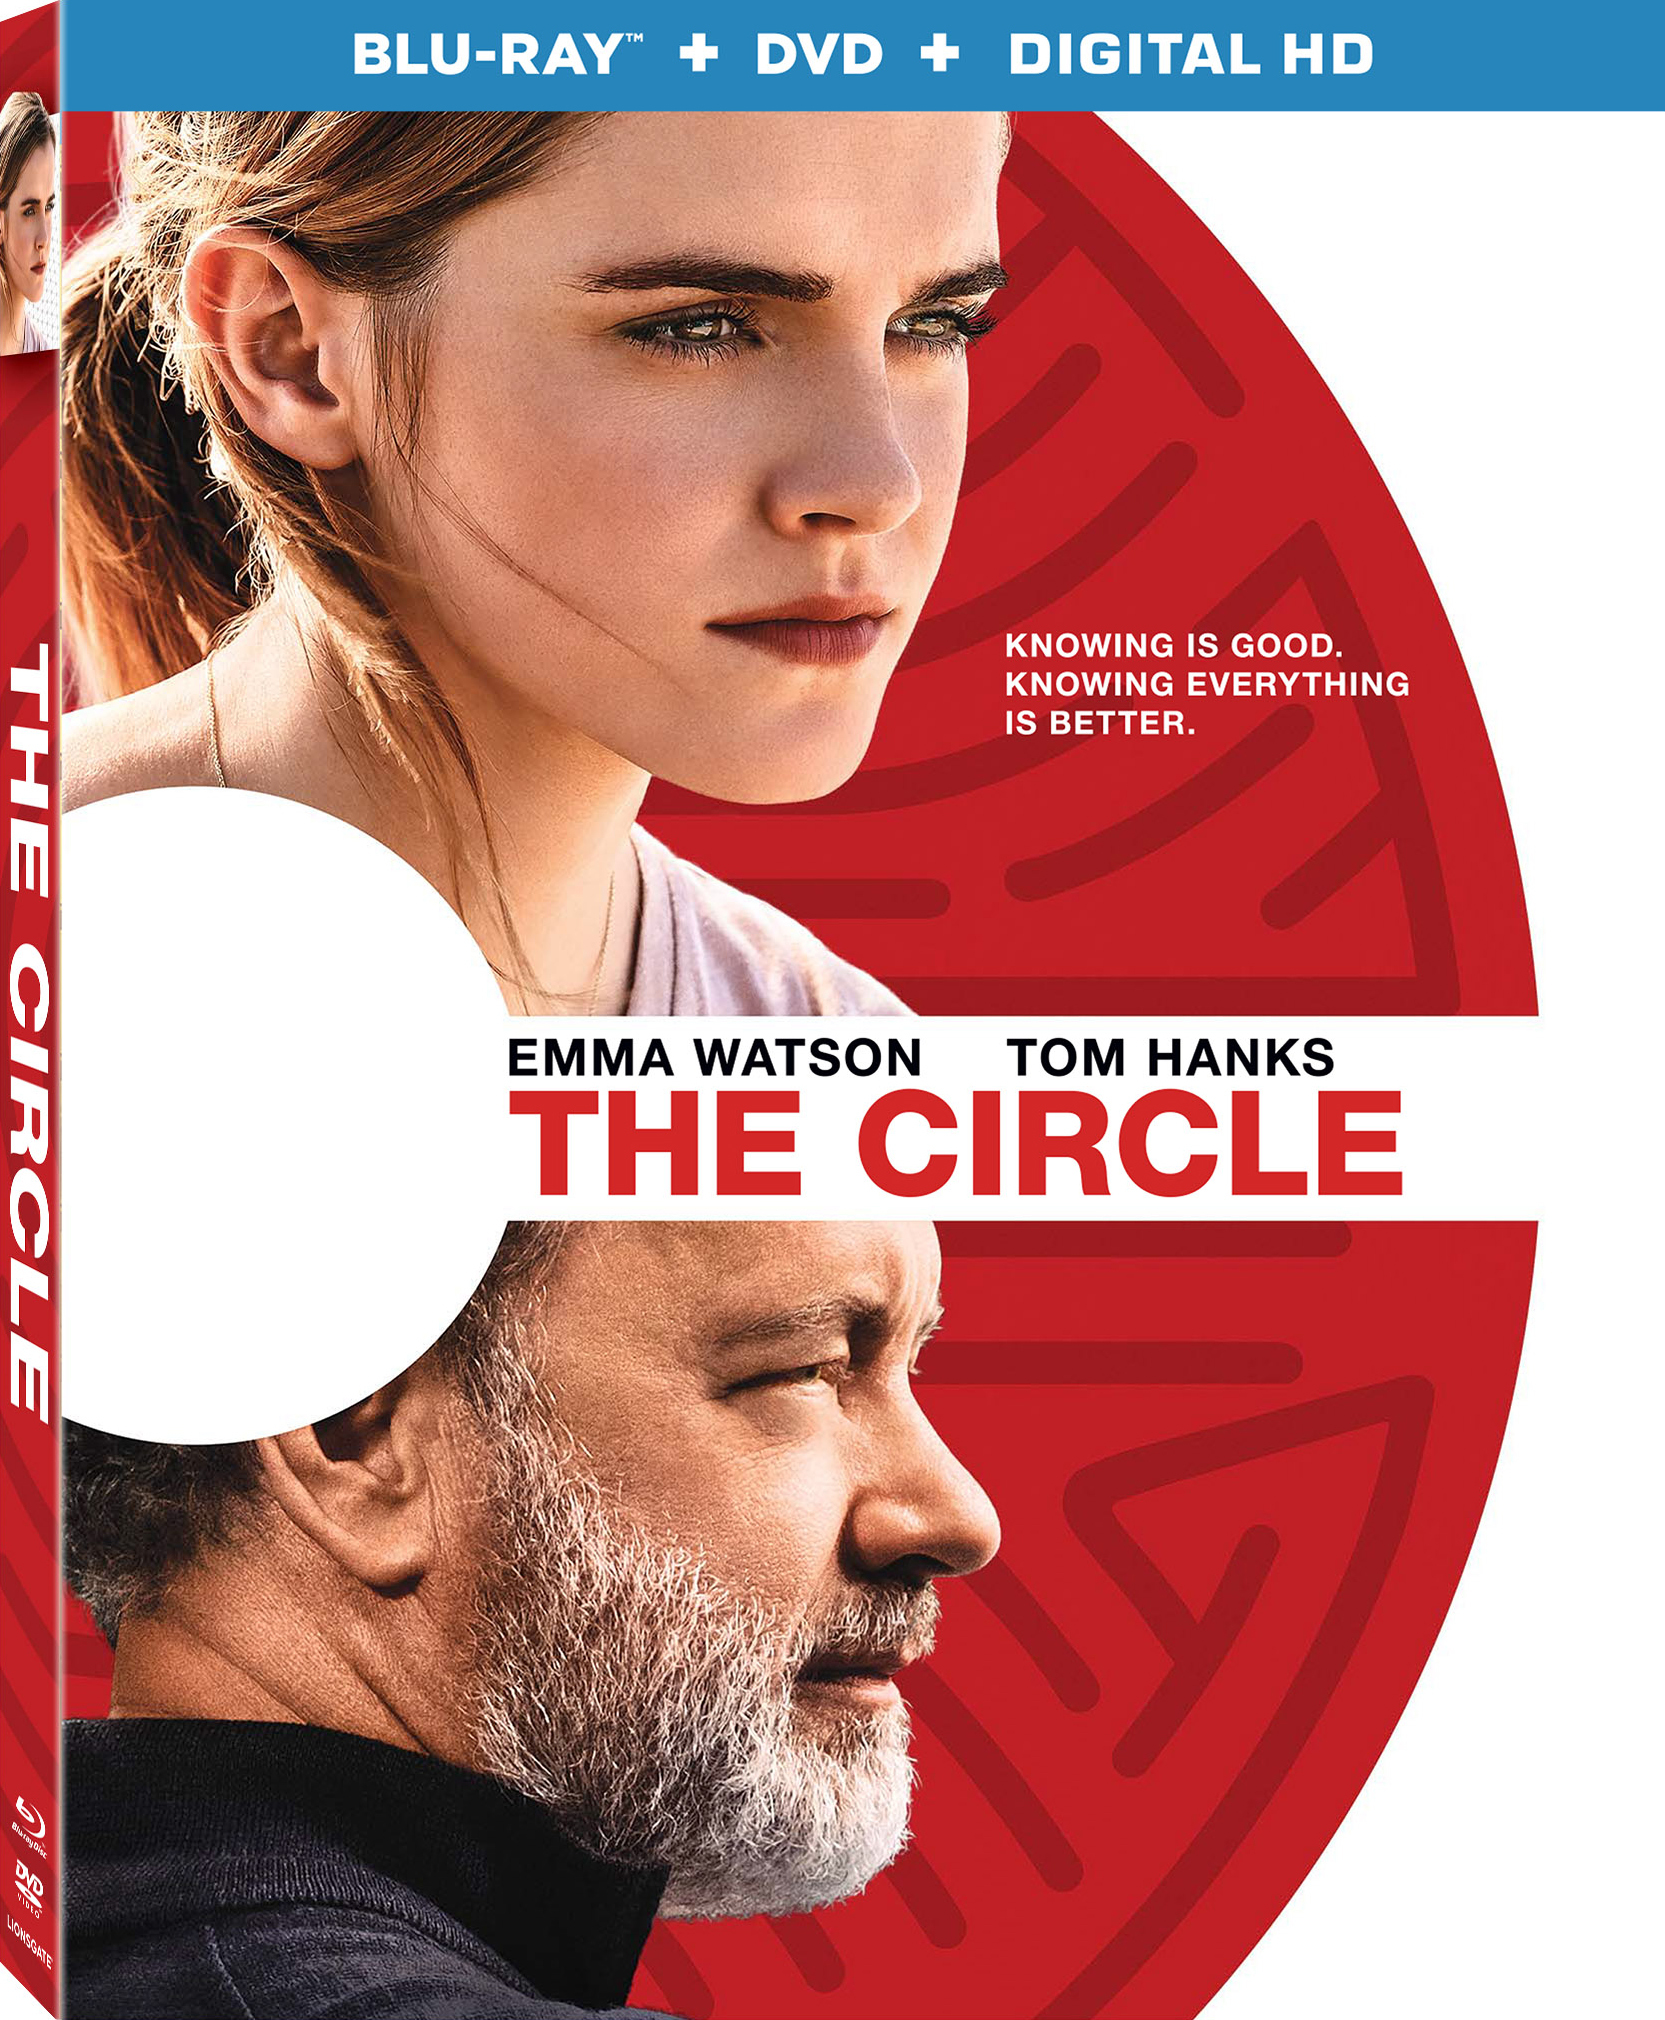 The Circle (2017) poster image